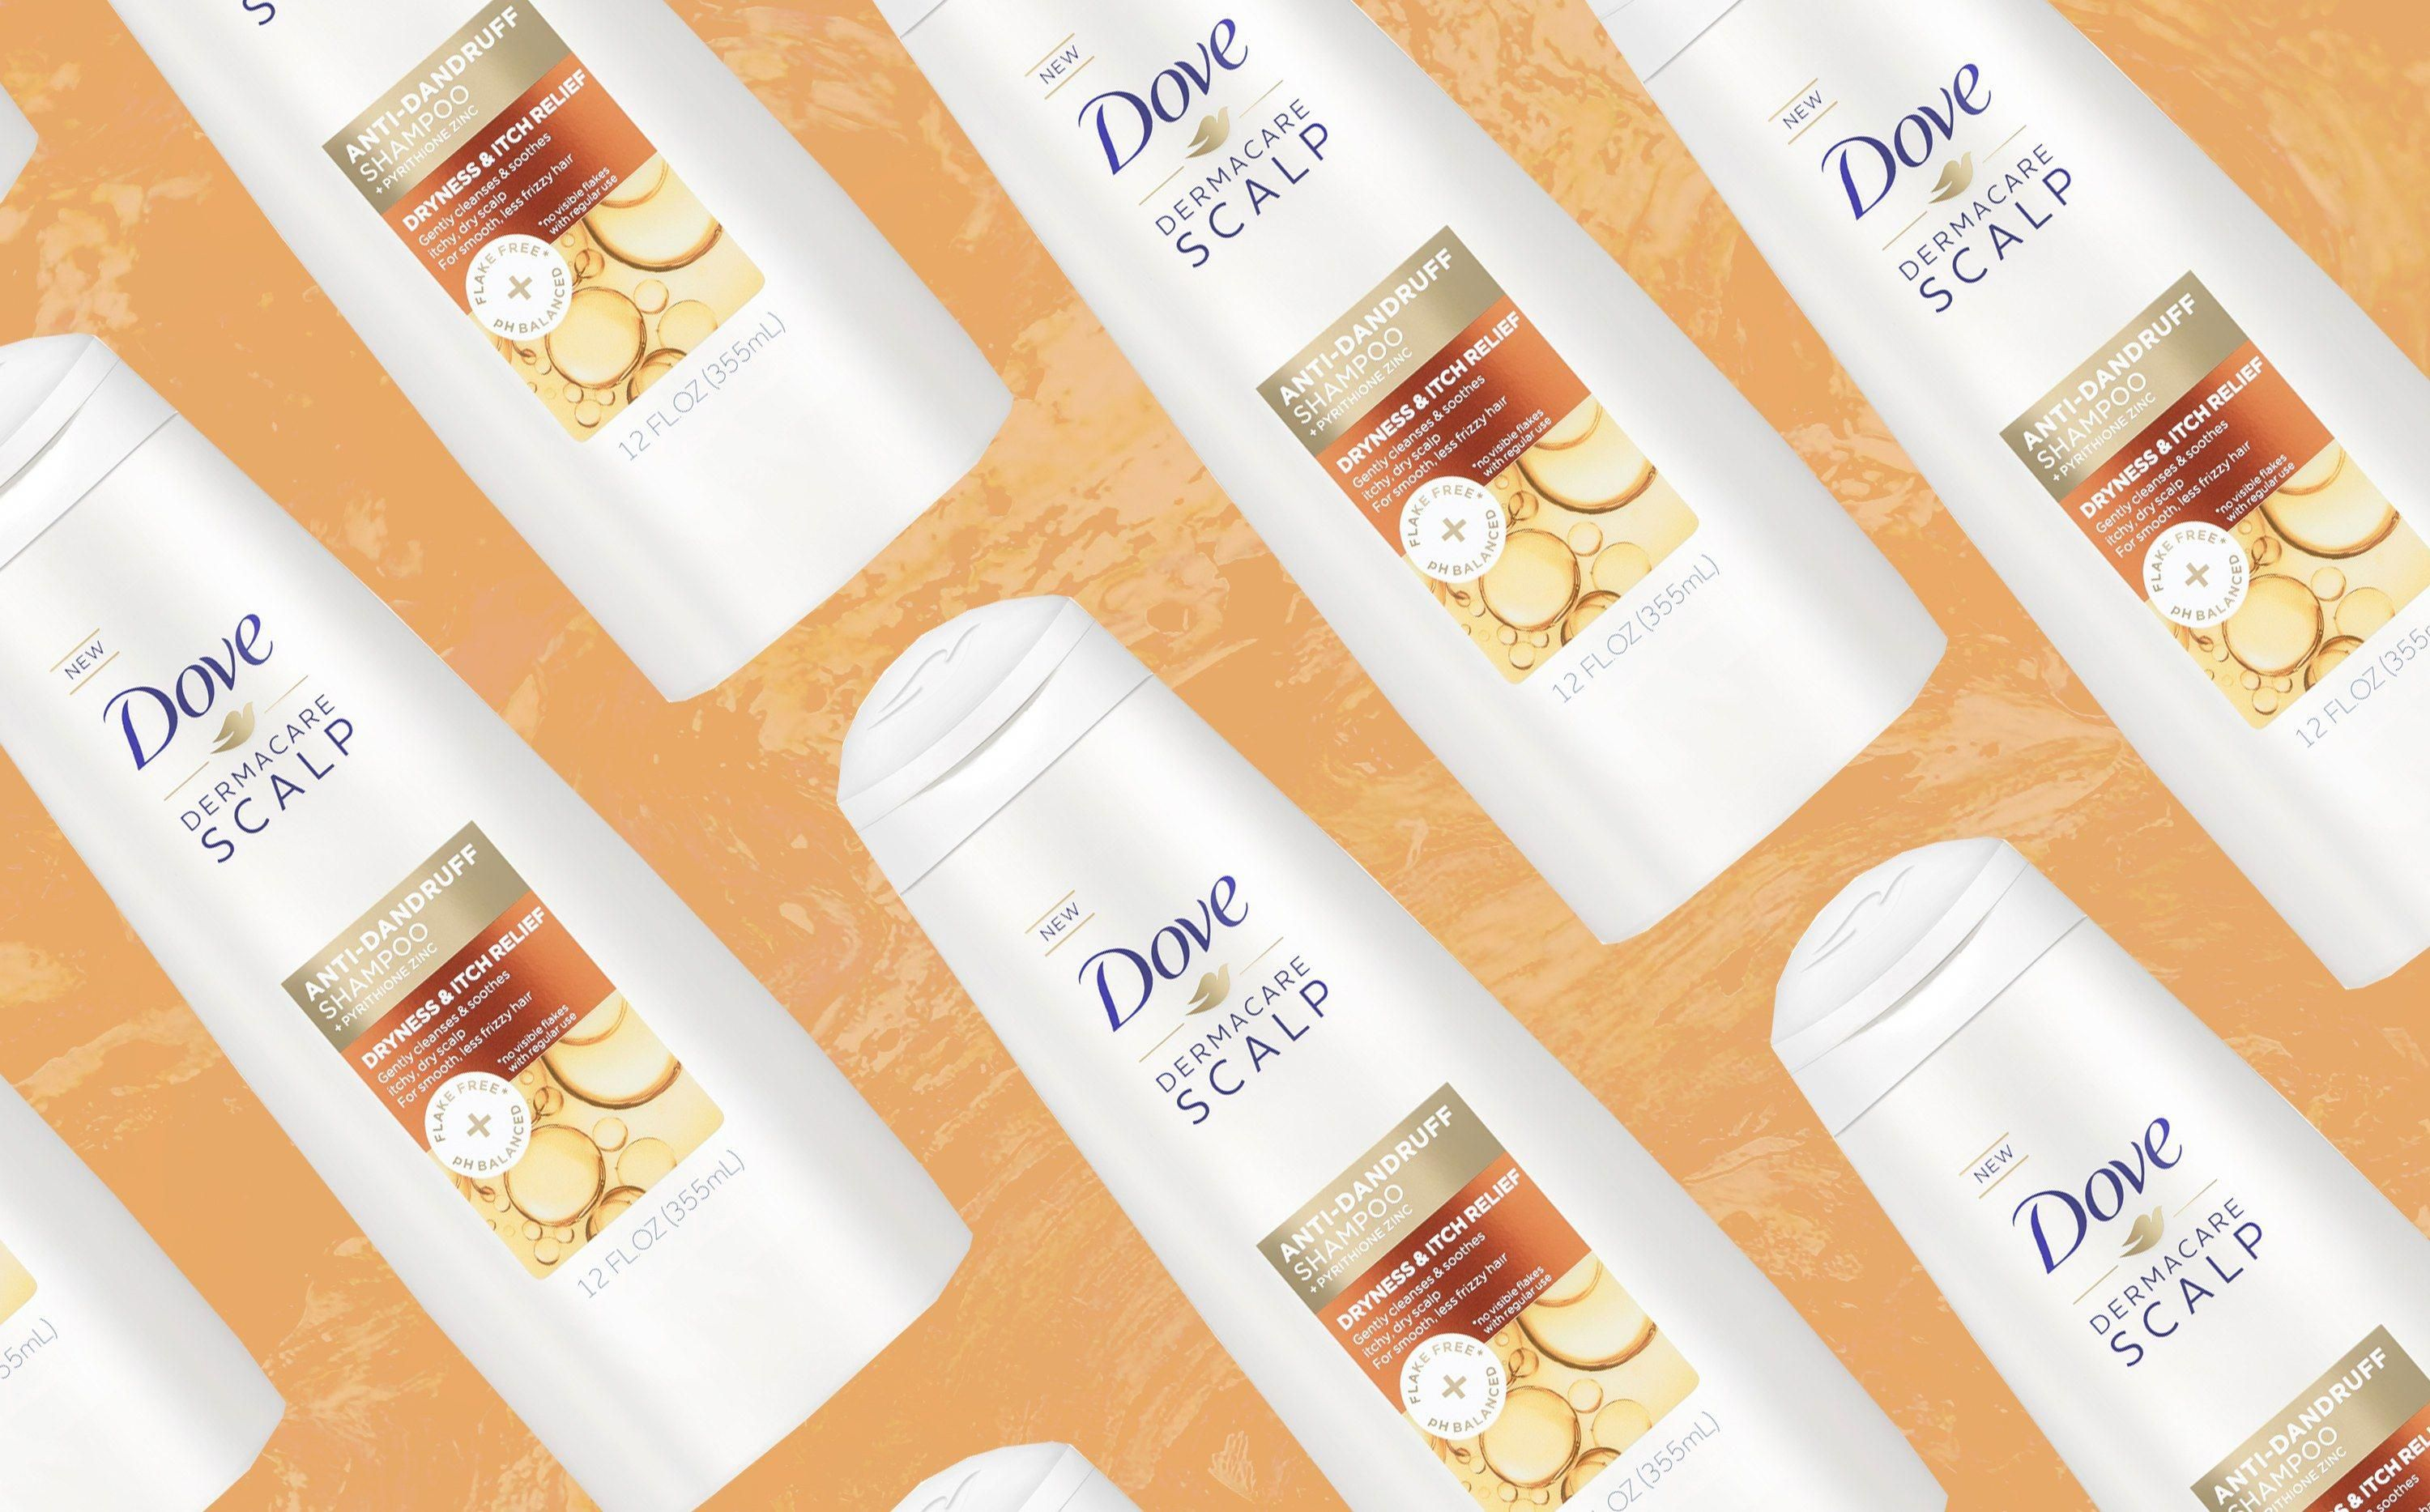 Dove DermaCare Scalp Dryness & Itch Relief Shampoo Review